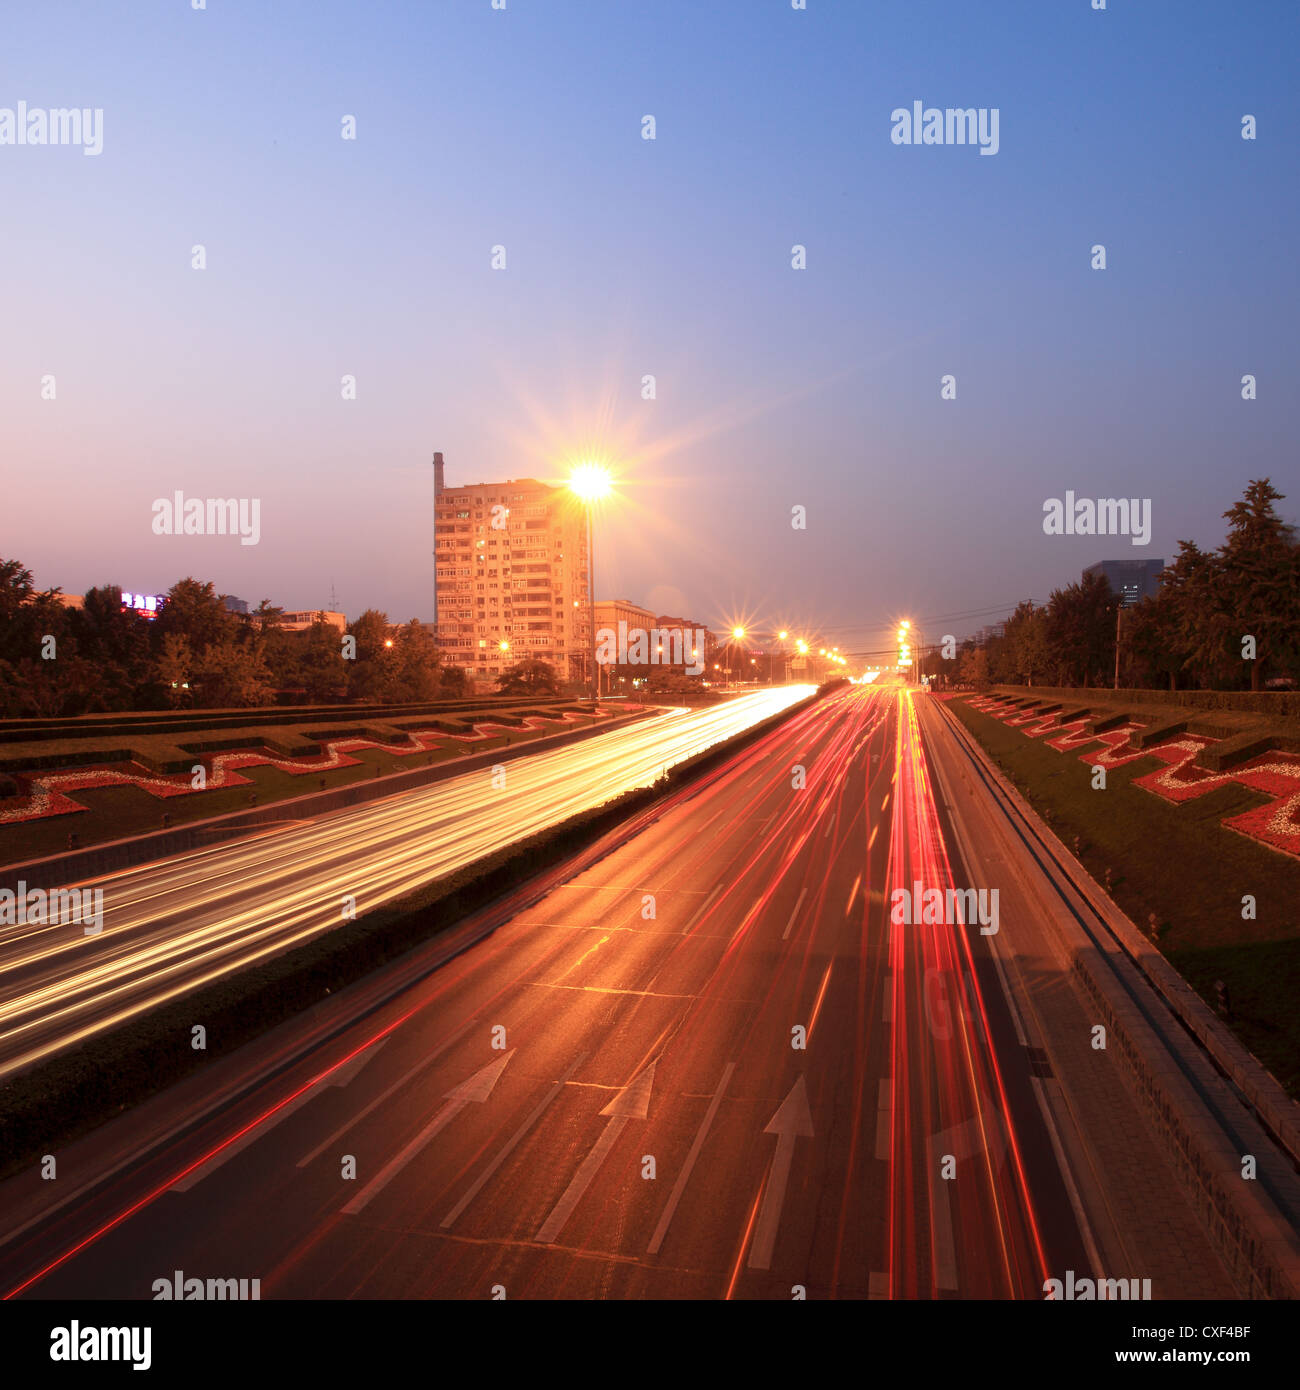 traffic at dusk in rush hour - Stock Image